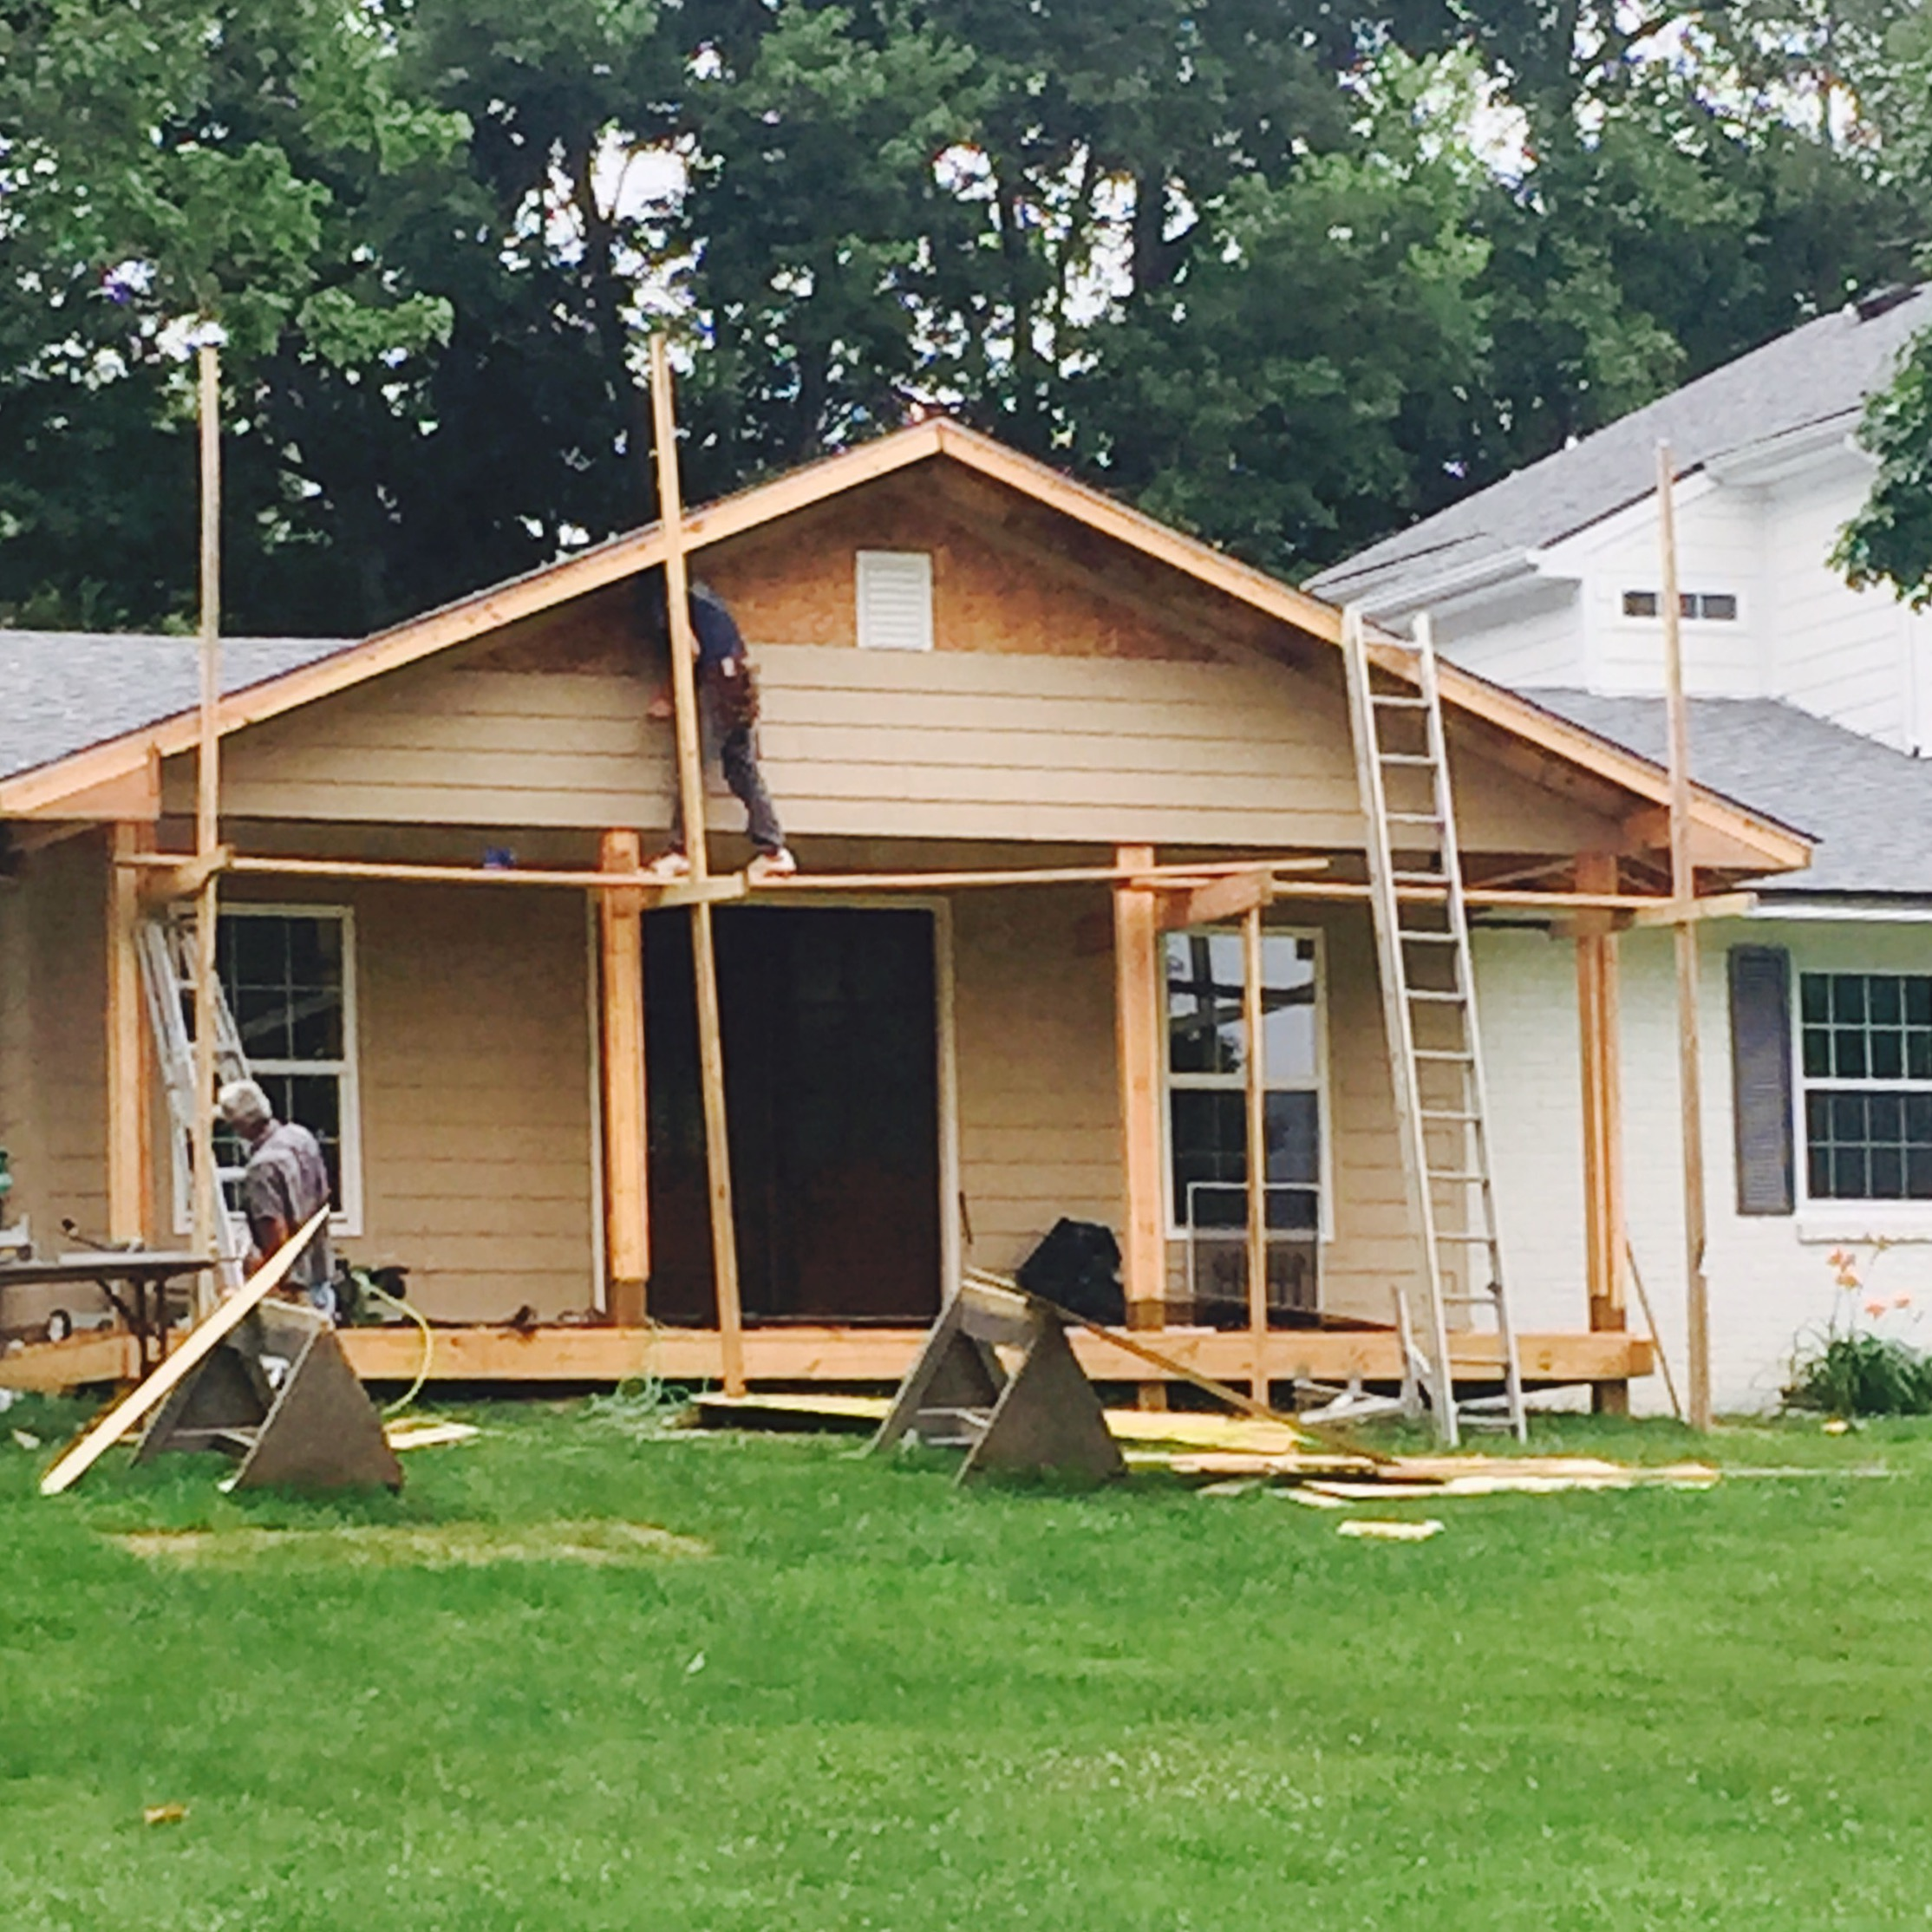 Roof Design Ideas: Our Front Porch From Beginning To End